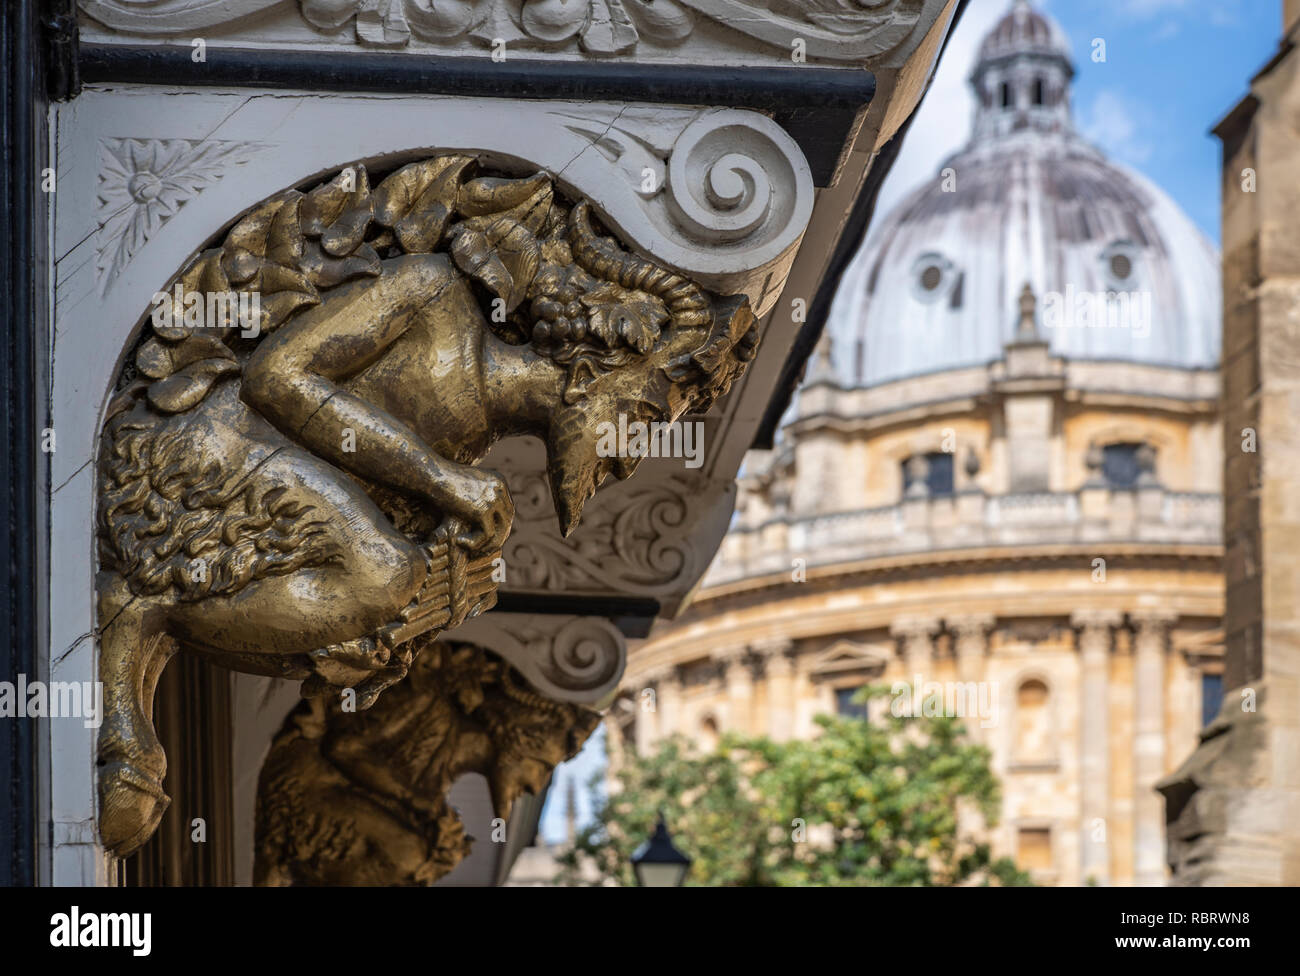 Carvings over a doorway in Oxford, said to have inspired CS Lewis's character Mr Tumnus, from The Lion, The Witch and The Wardrobe - Stock Image